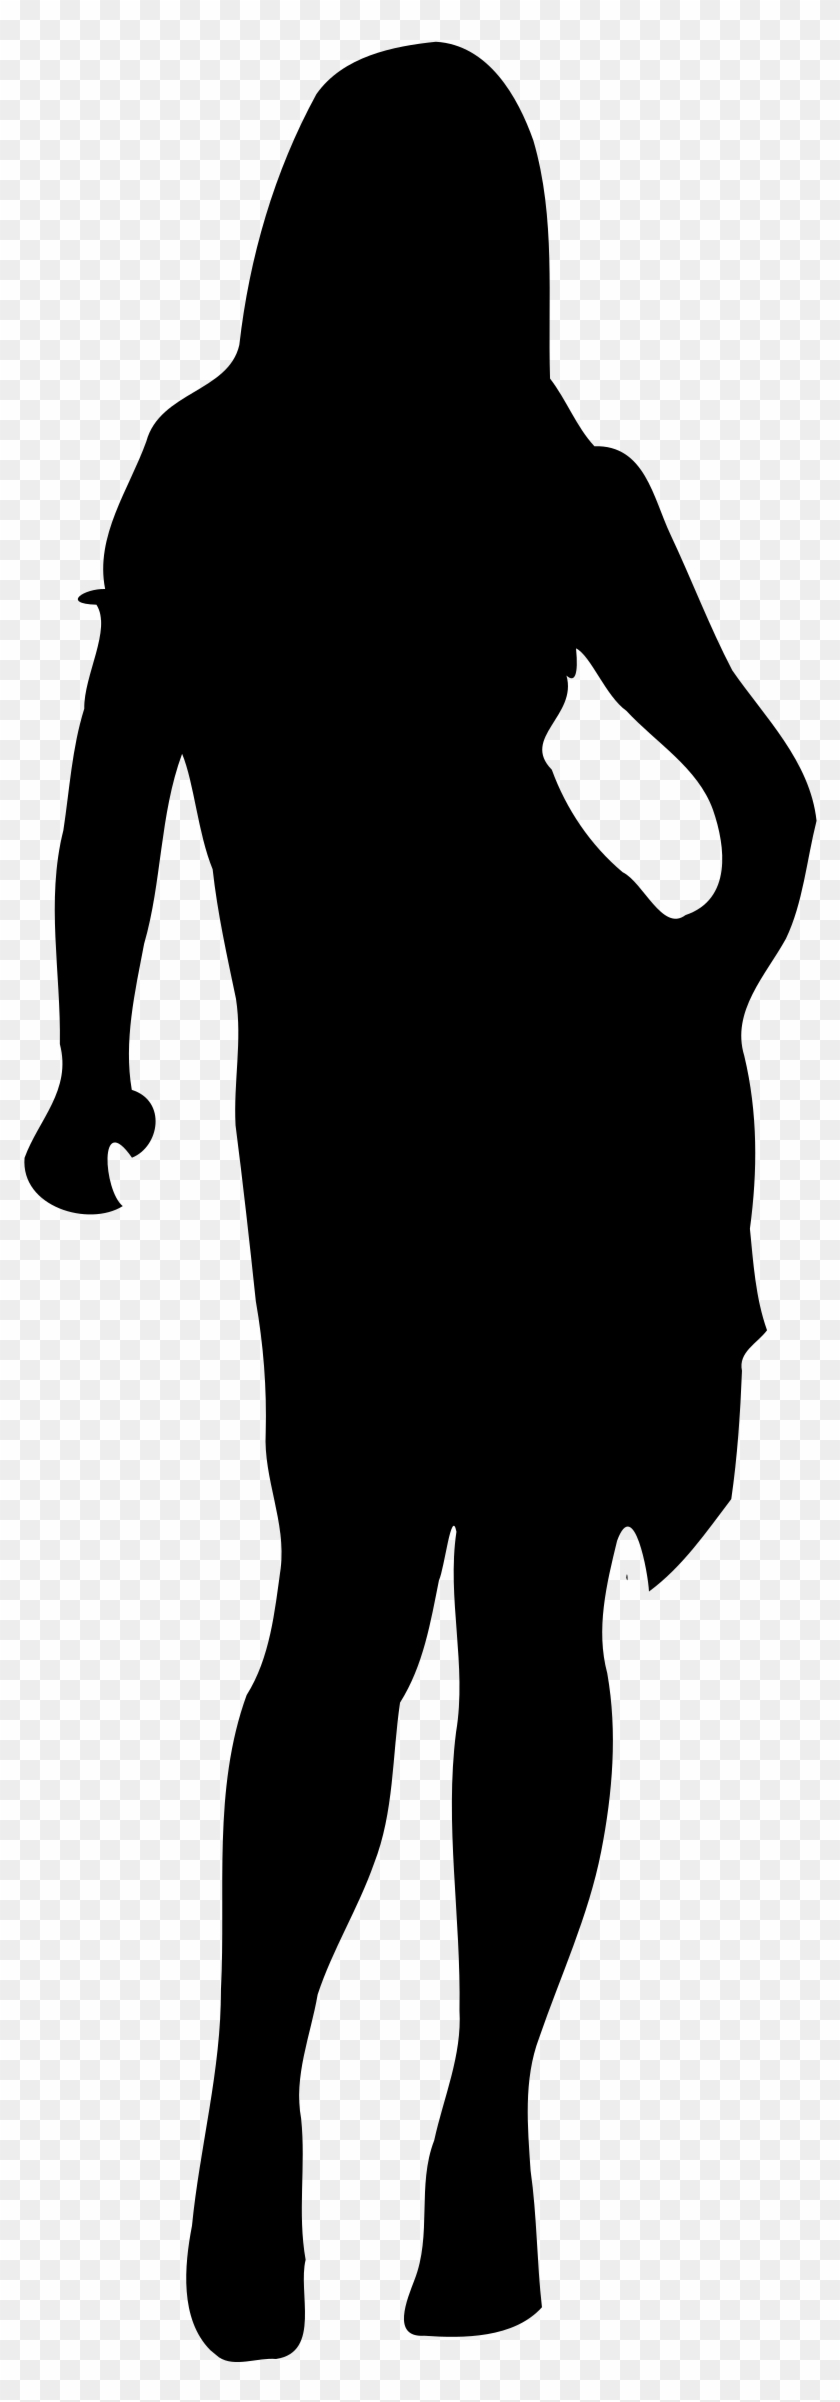 Female Shape Cliparts - Woman Silhouette Png #108096